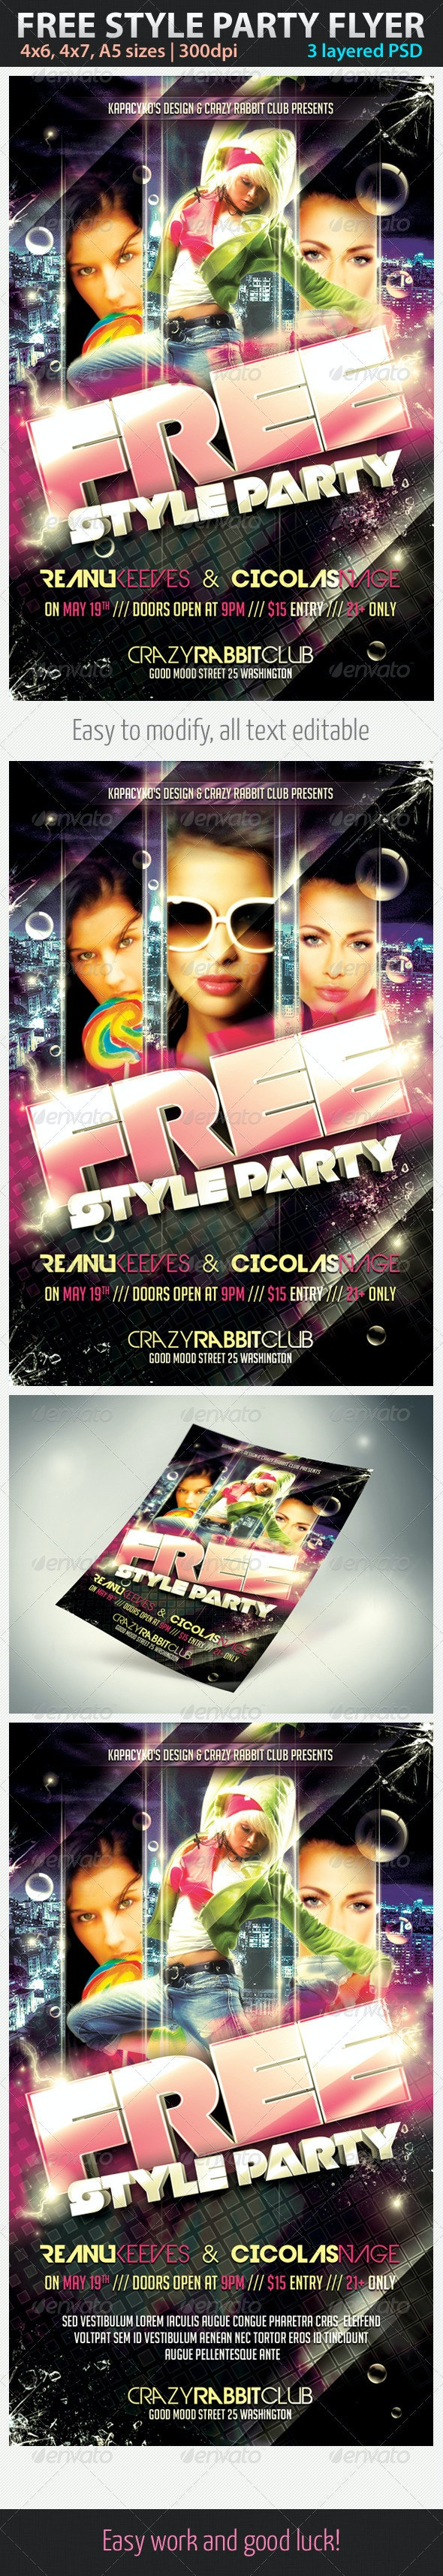 Free Style Party Flyer - Clubs & Parties Events